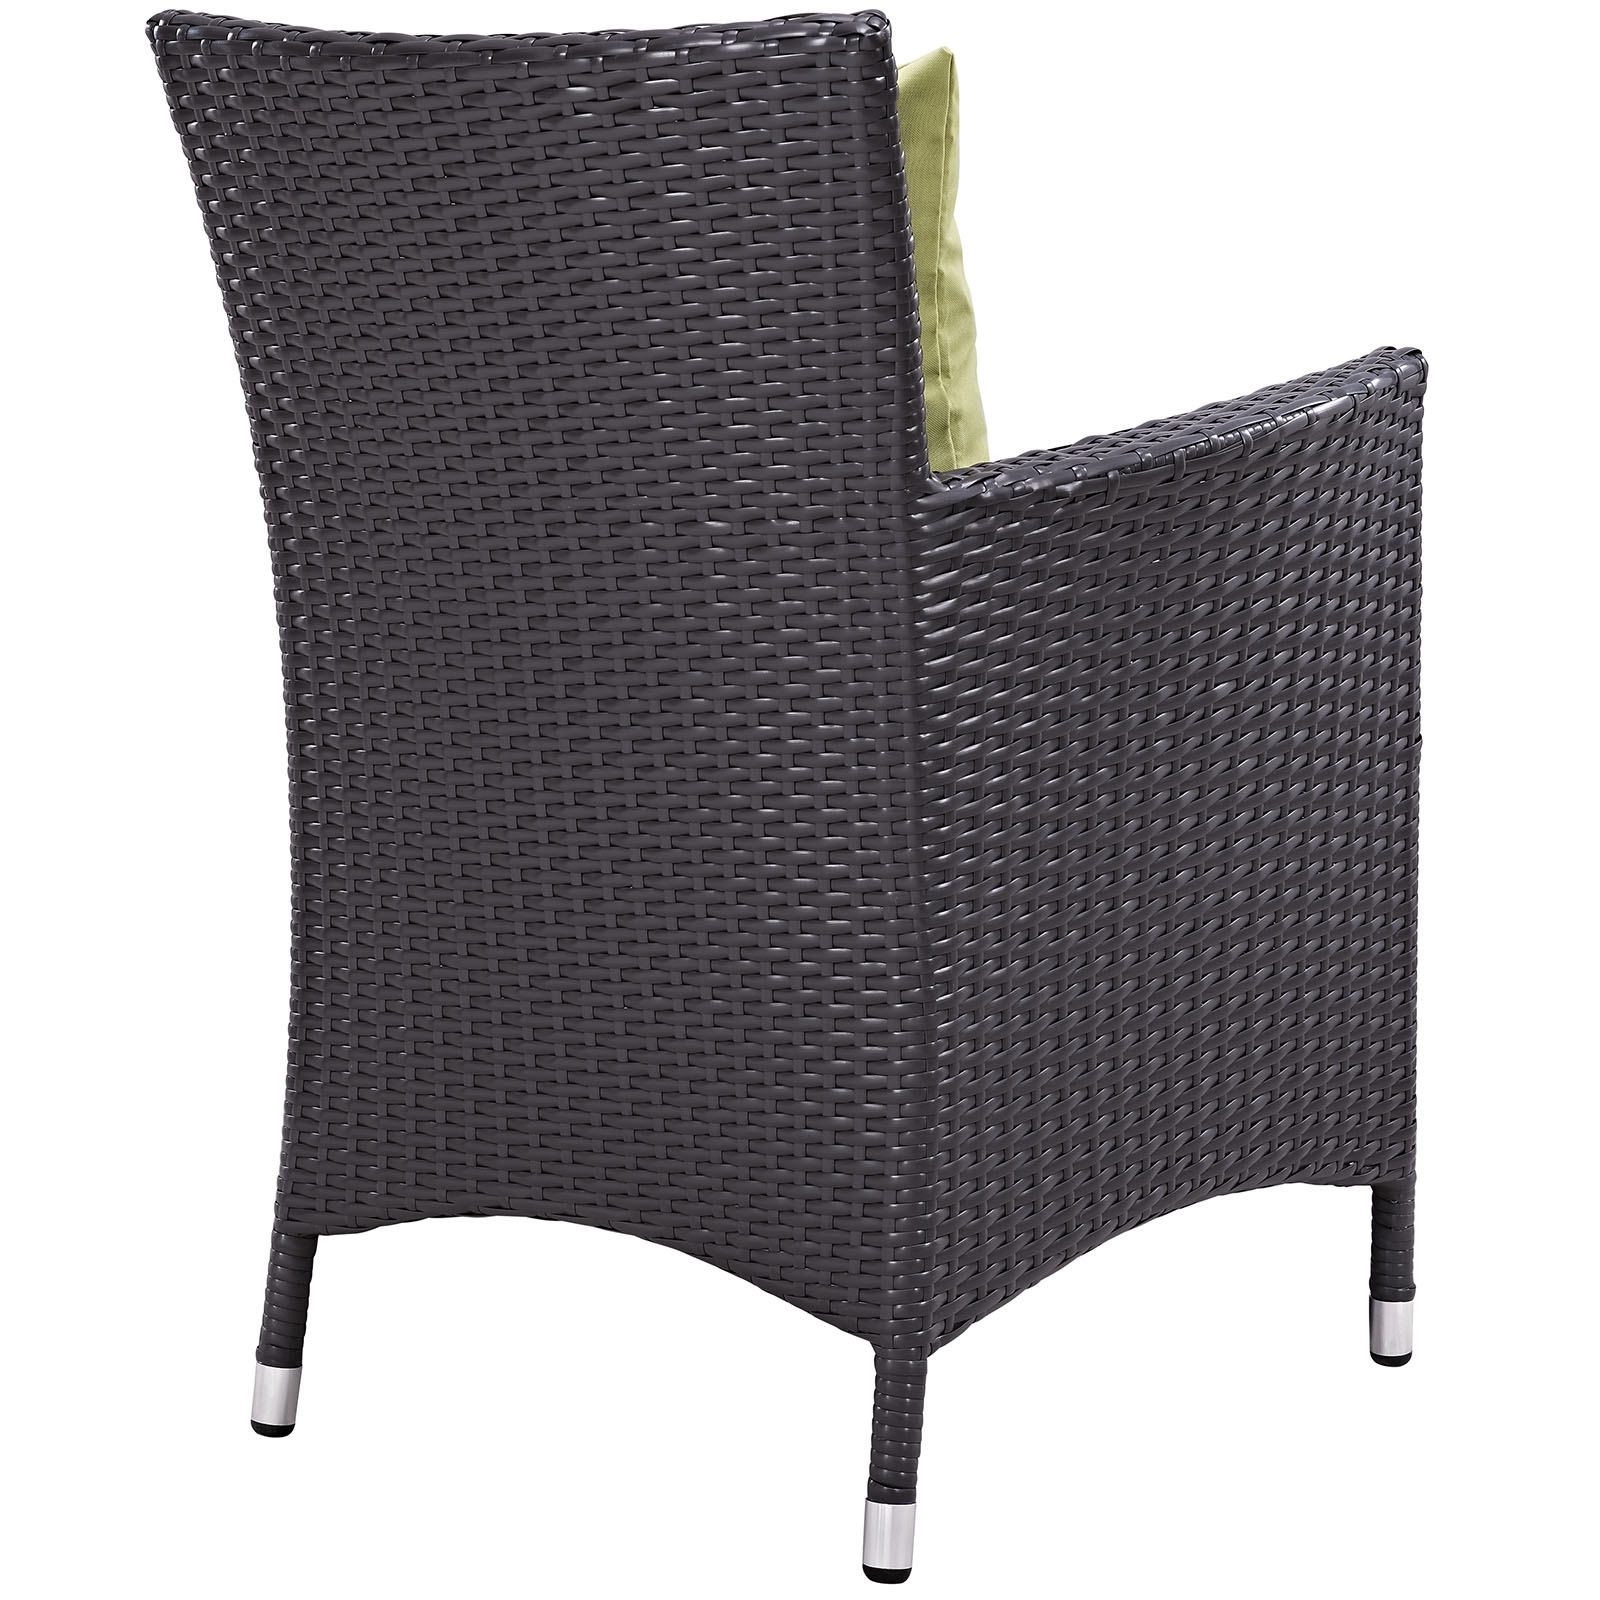 Rattan bistro chair back view